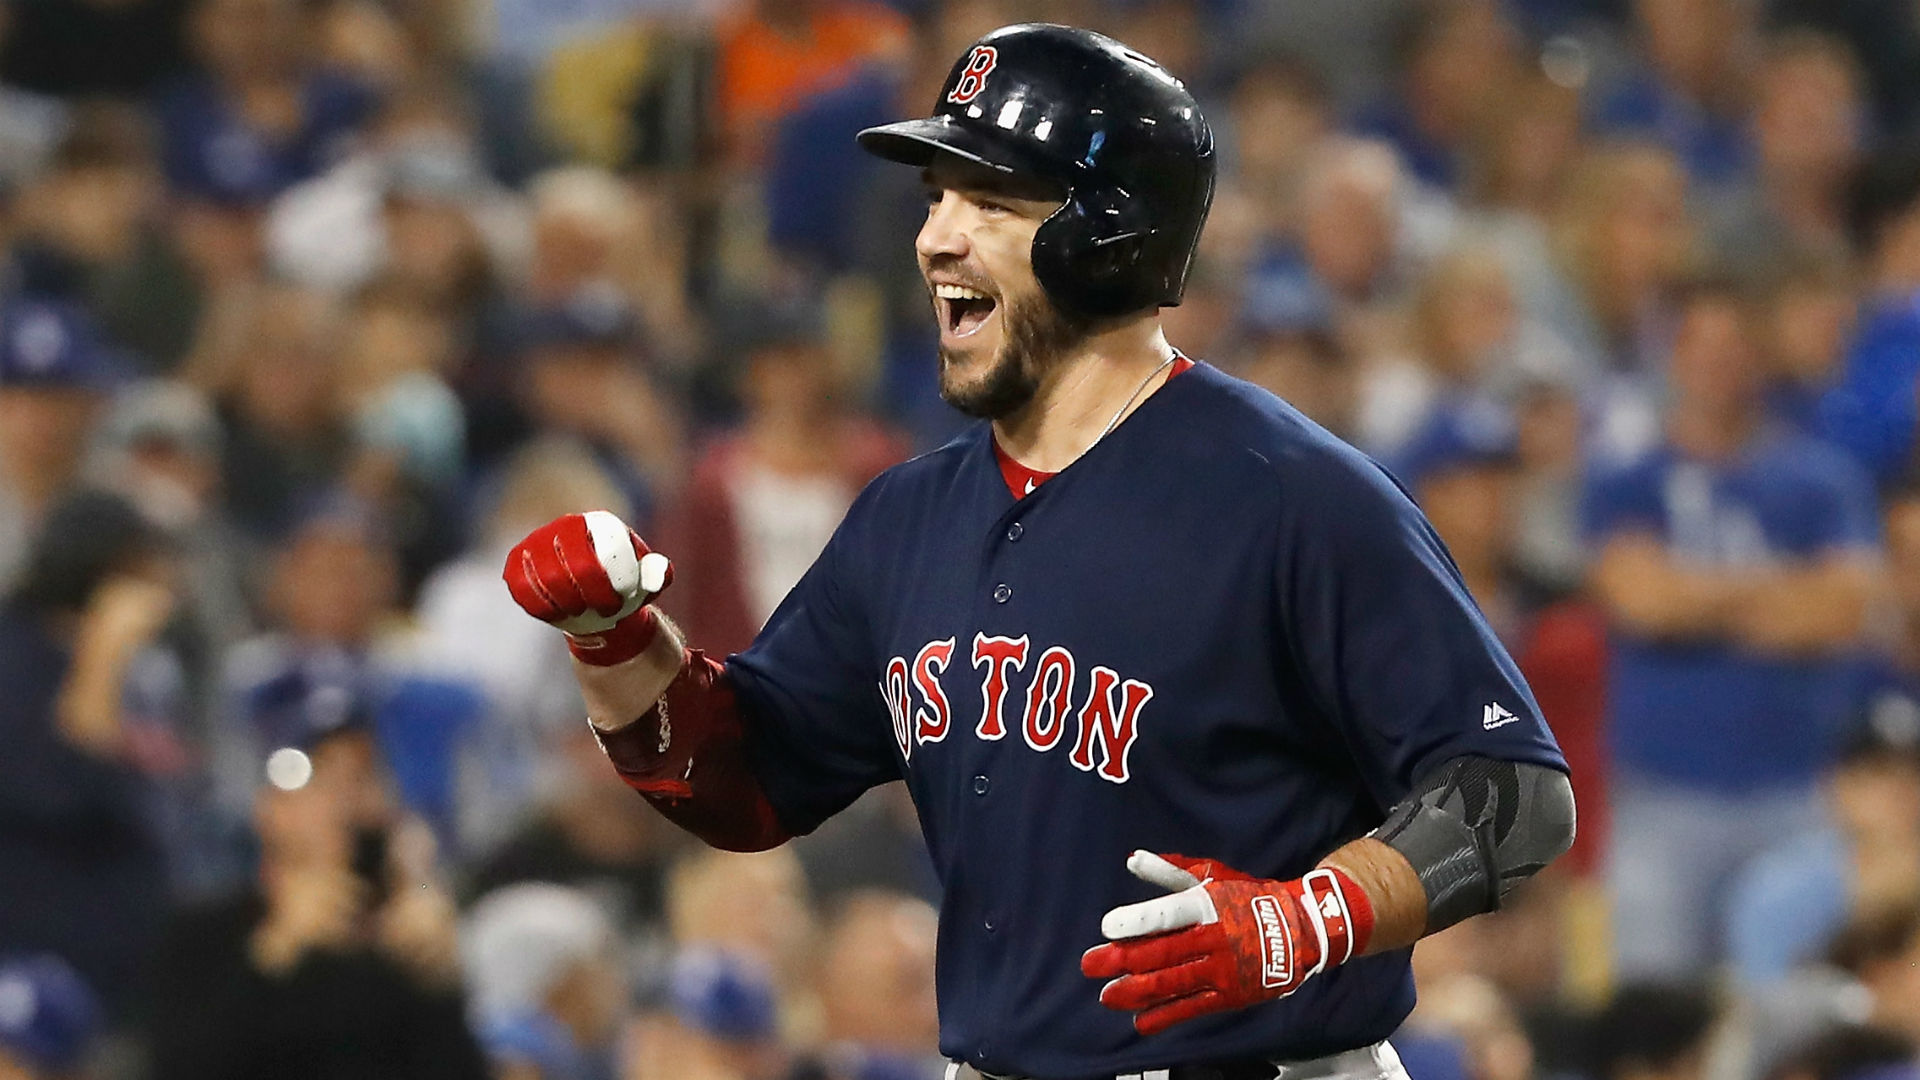 promo code bfef9 27fd4 Red Sox sign Pearce to 1-year deal | Sporting News